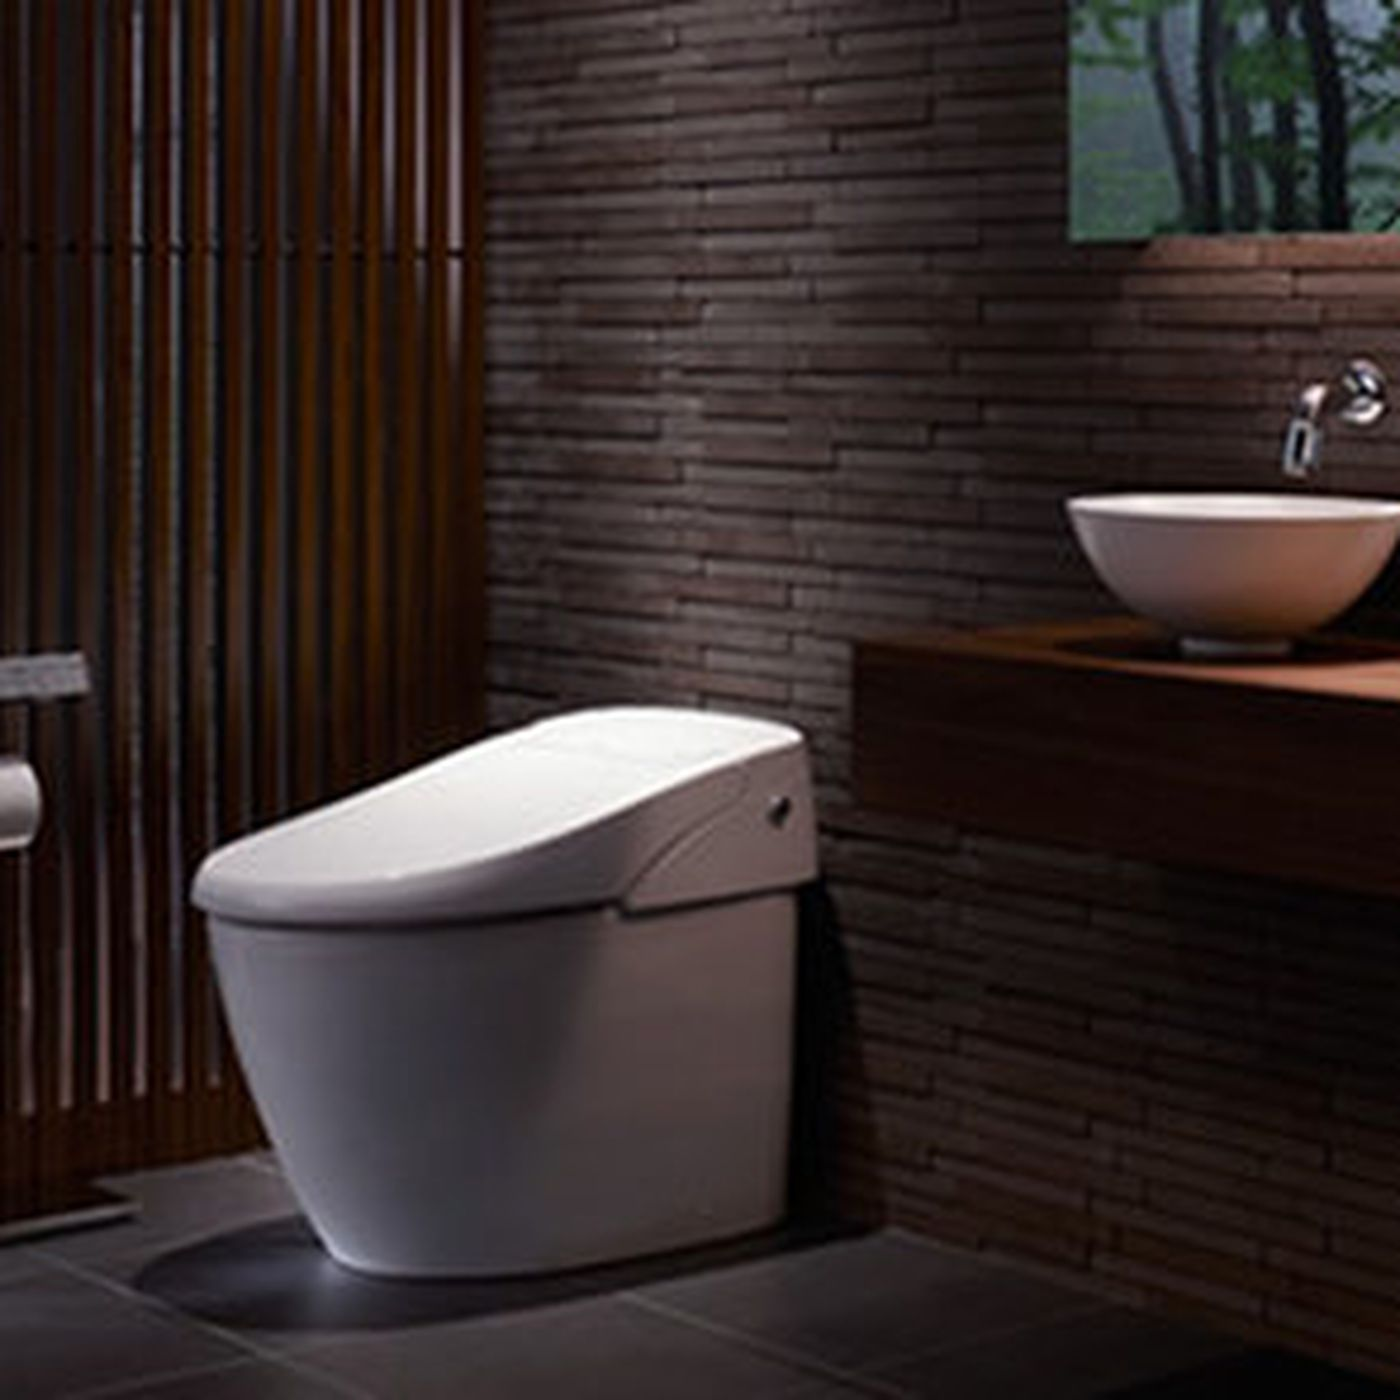 Japanese toilet answers nature\'s call via Android - The Verge